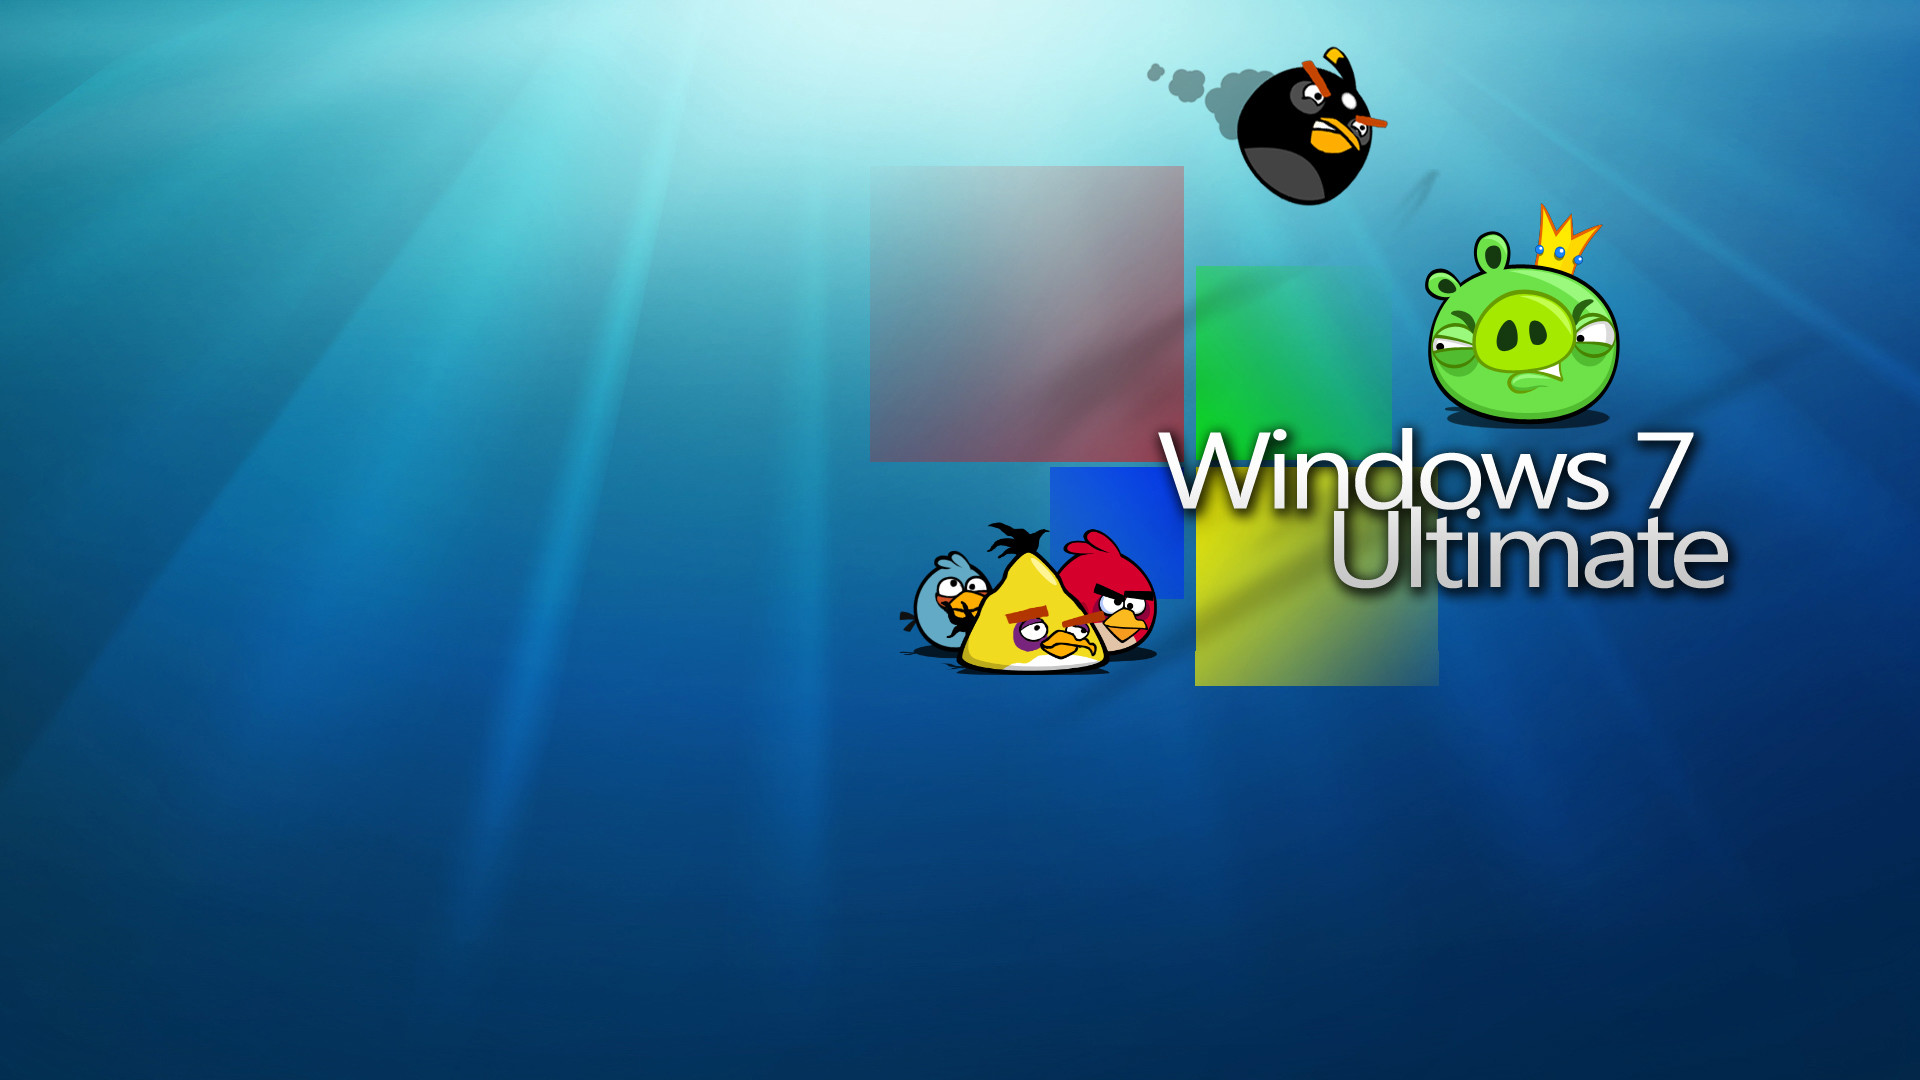 1920x1080 Windows 7 wallpaper